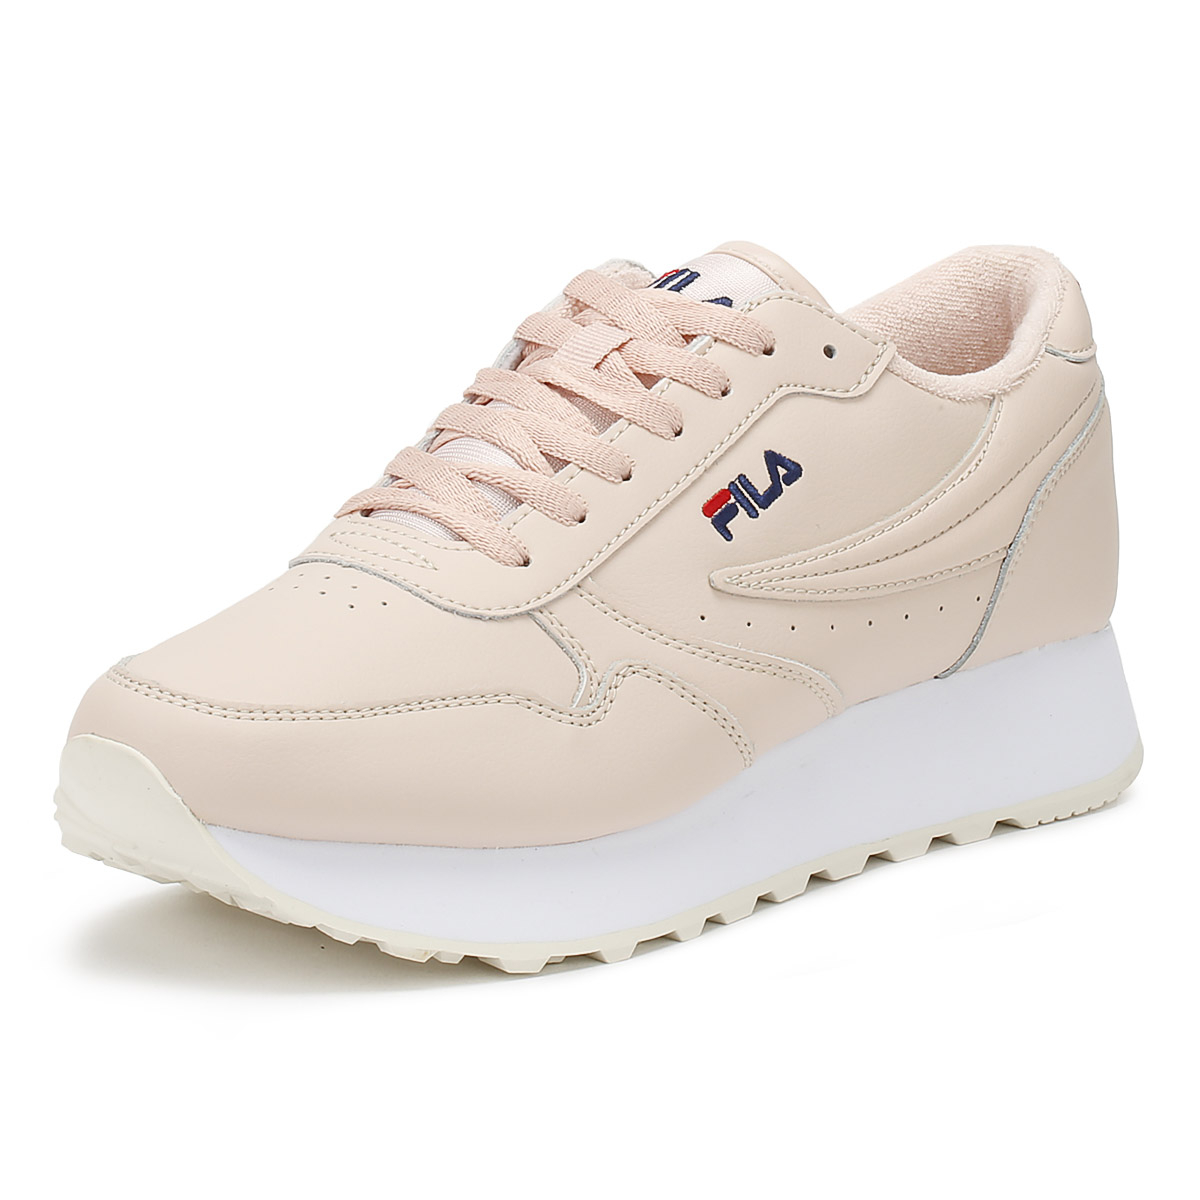 Details about Fila Womens Trainers Peach Whip Orbit Zeppa L Sport Casual  Lace Up Shoes dfd194cae4d